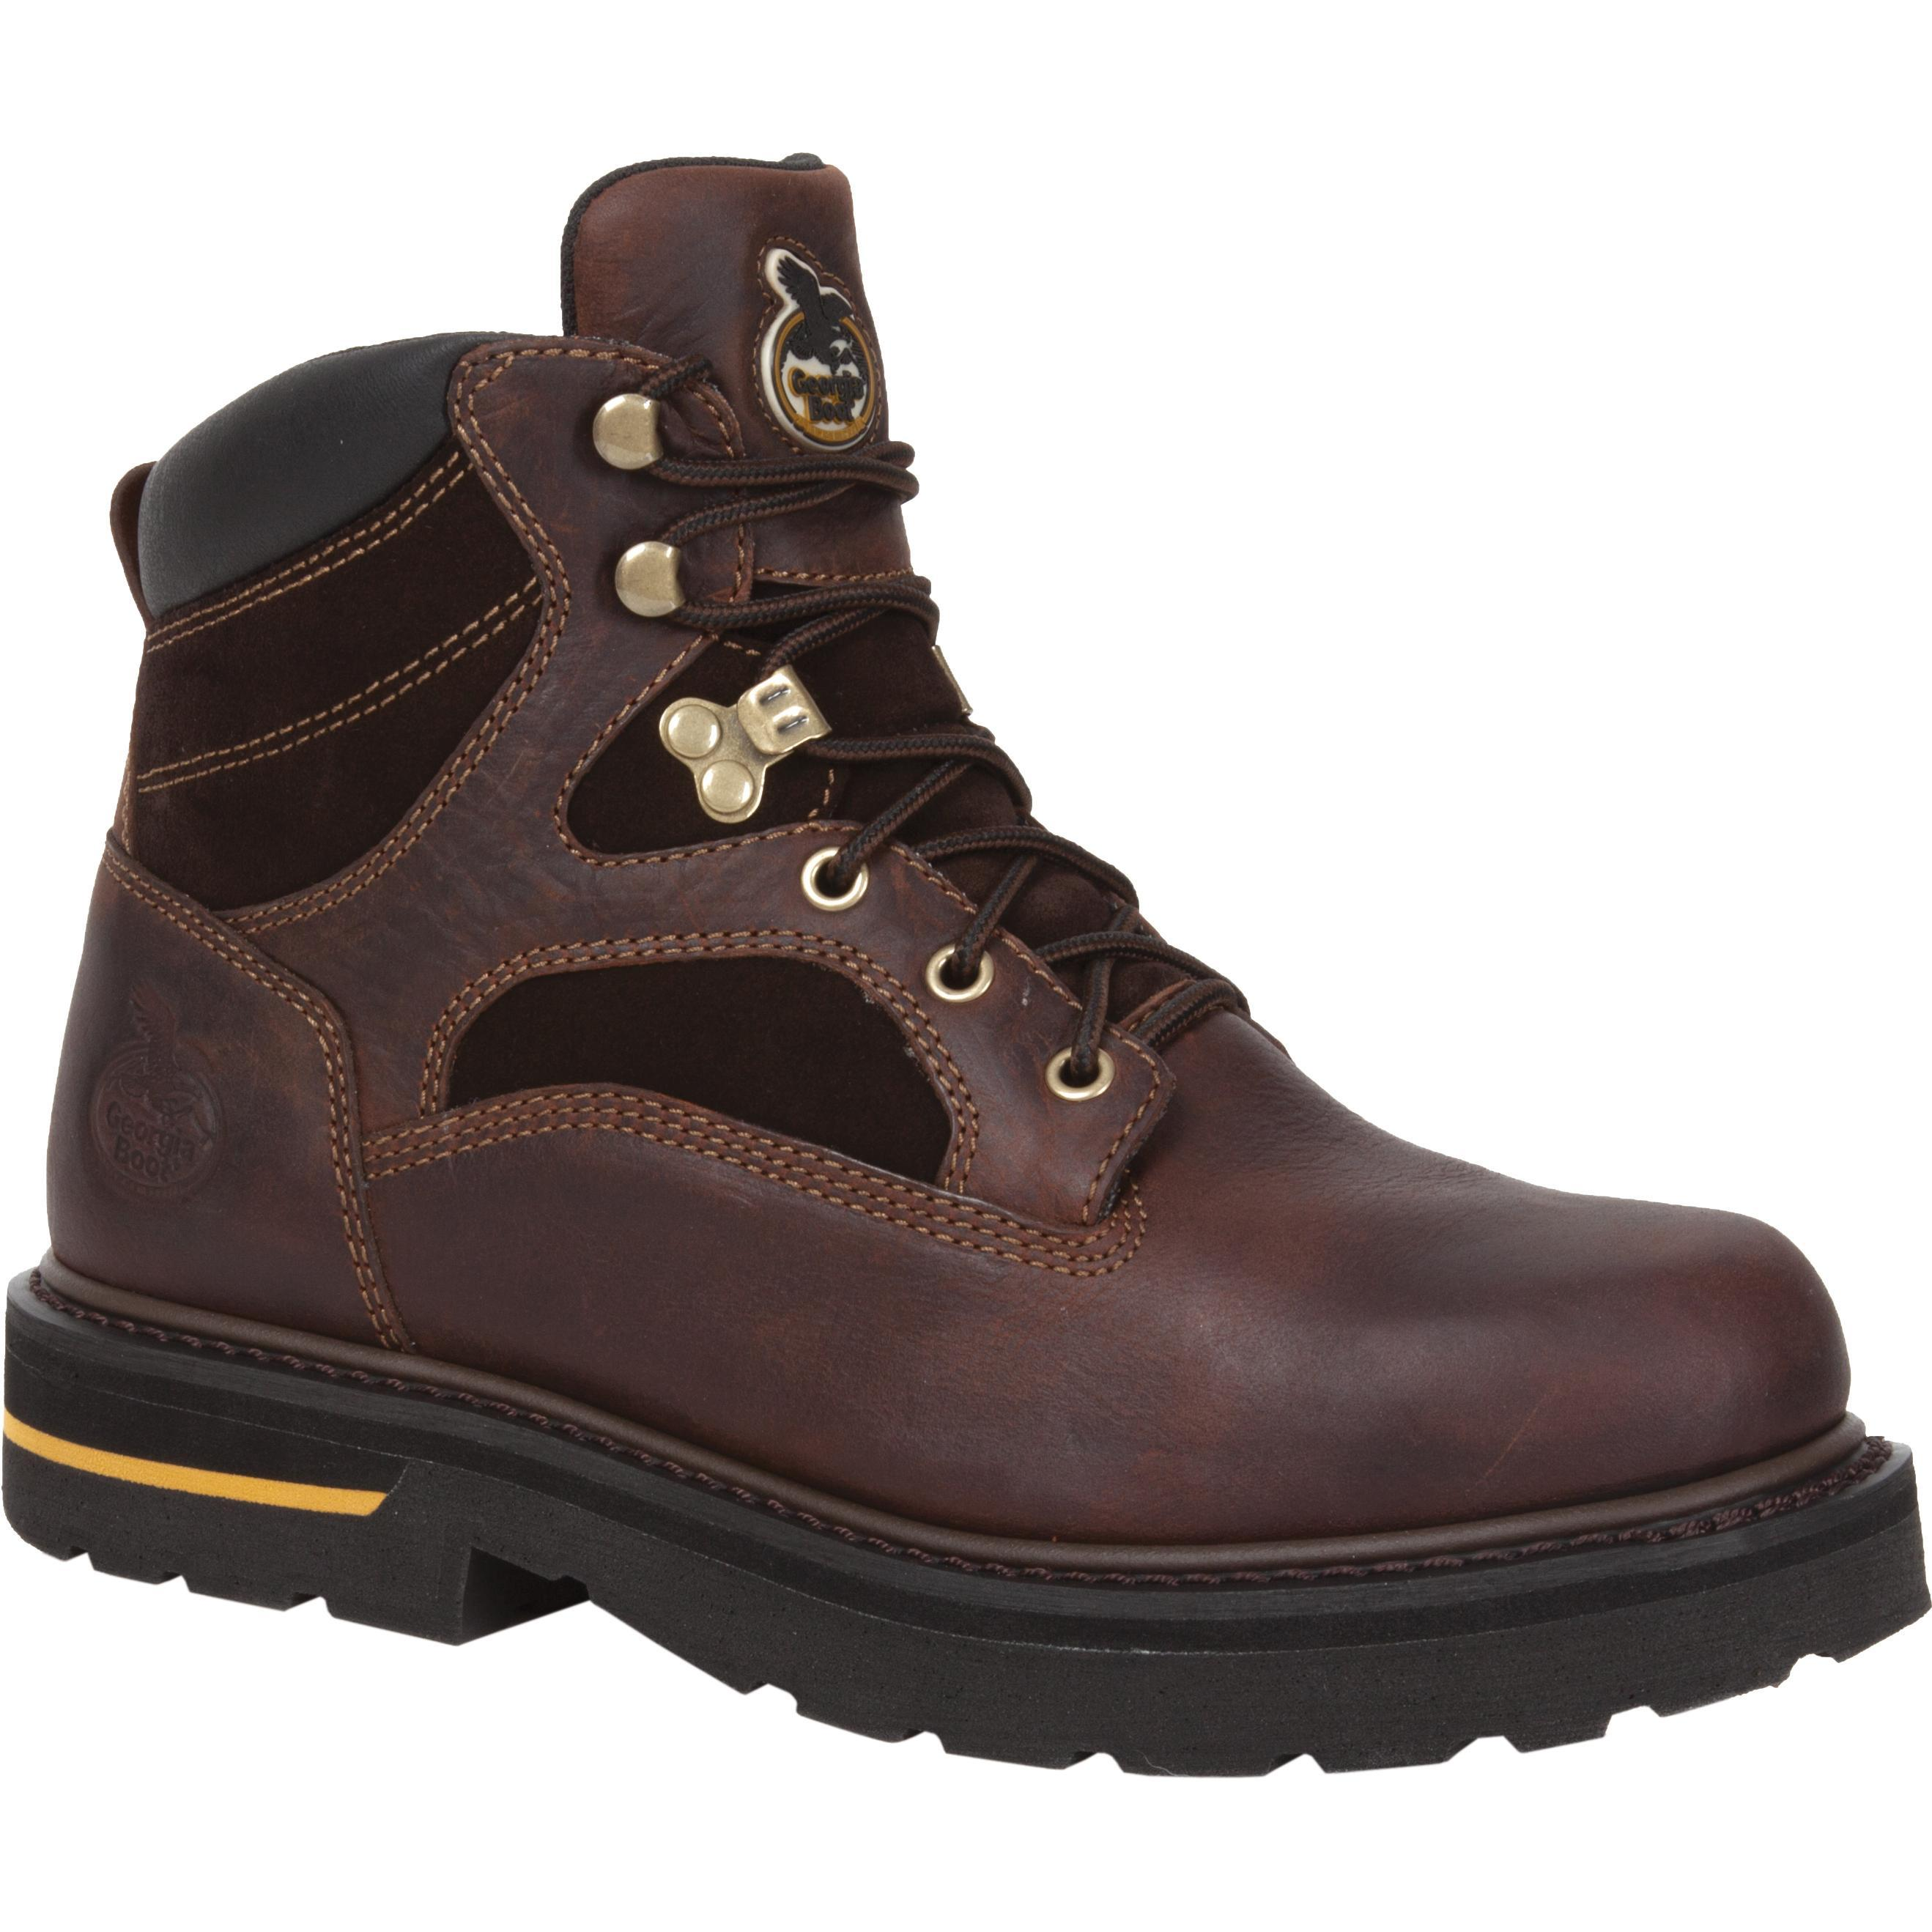 Georgia Legacy 37 Work Boots Comfortable Work Boots